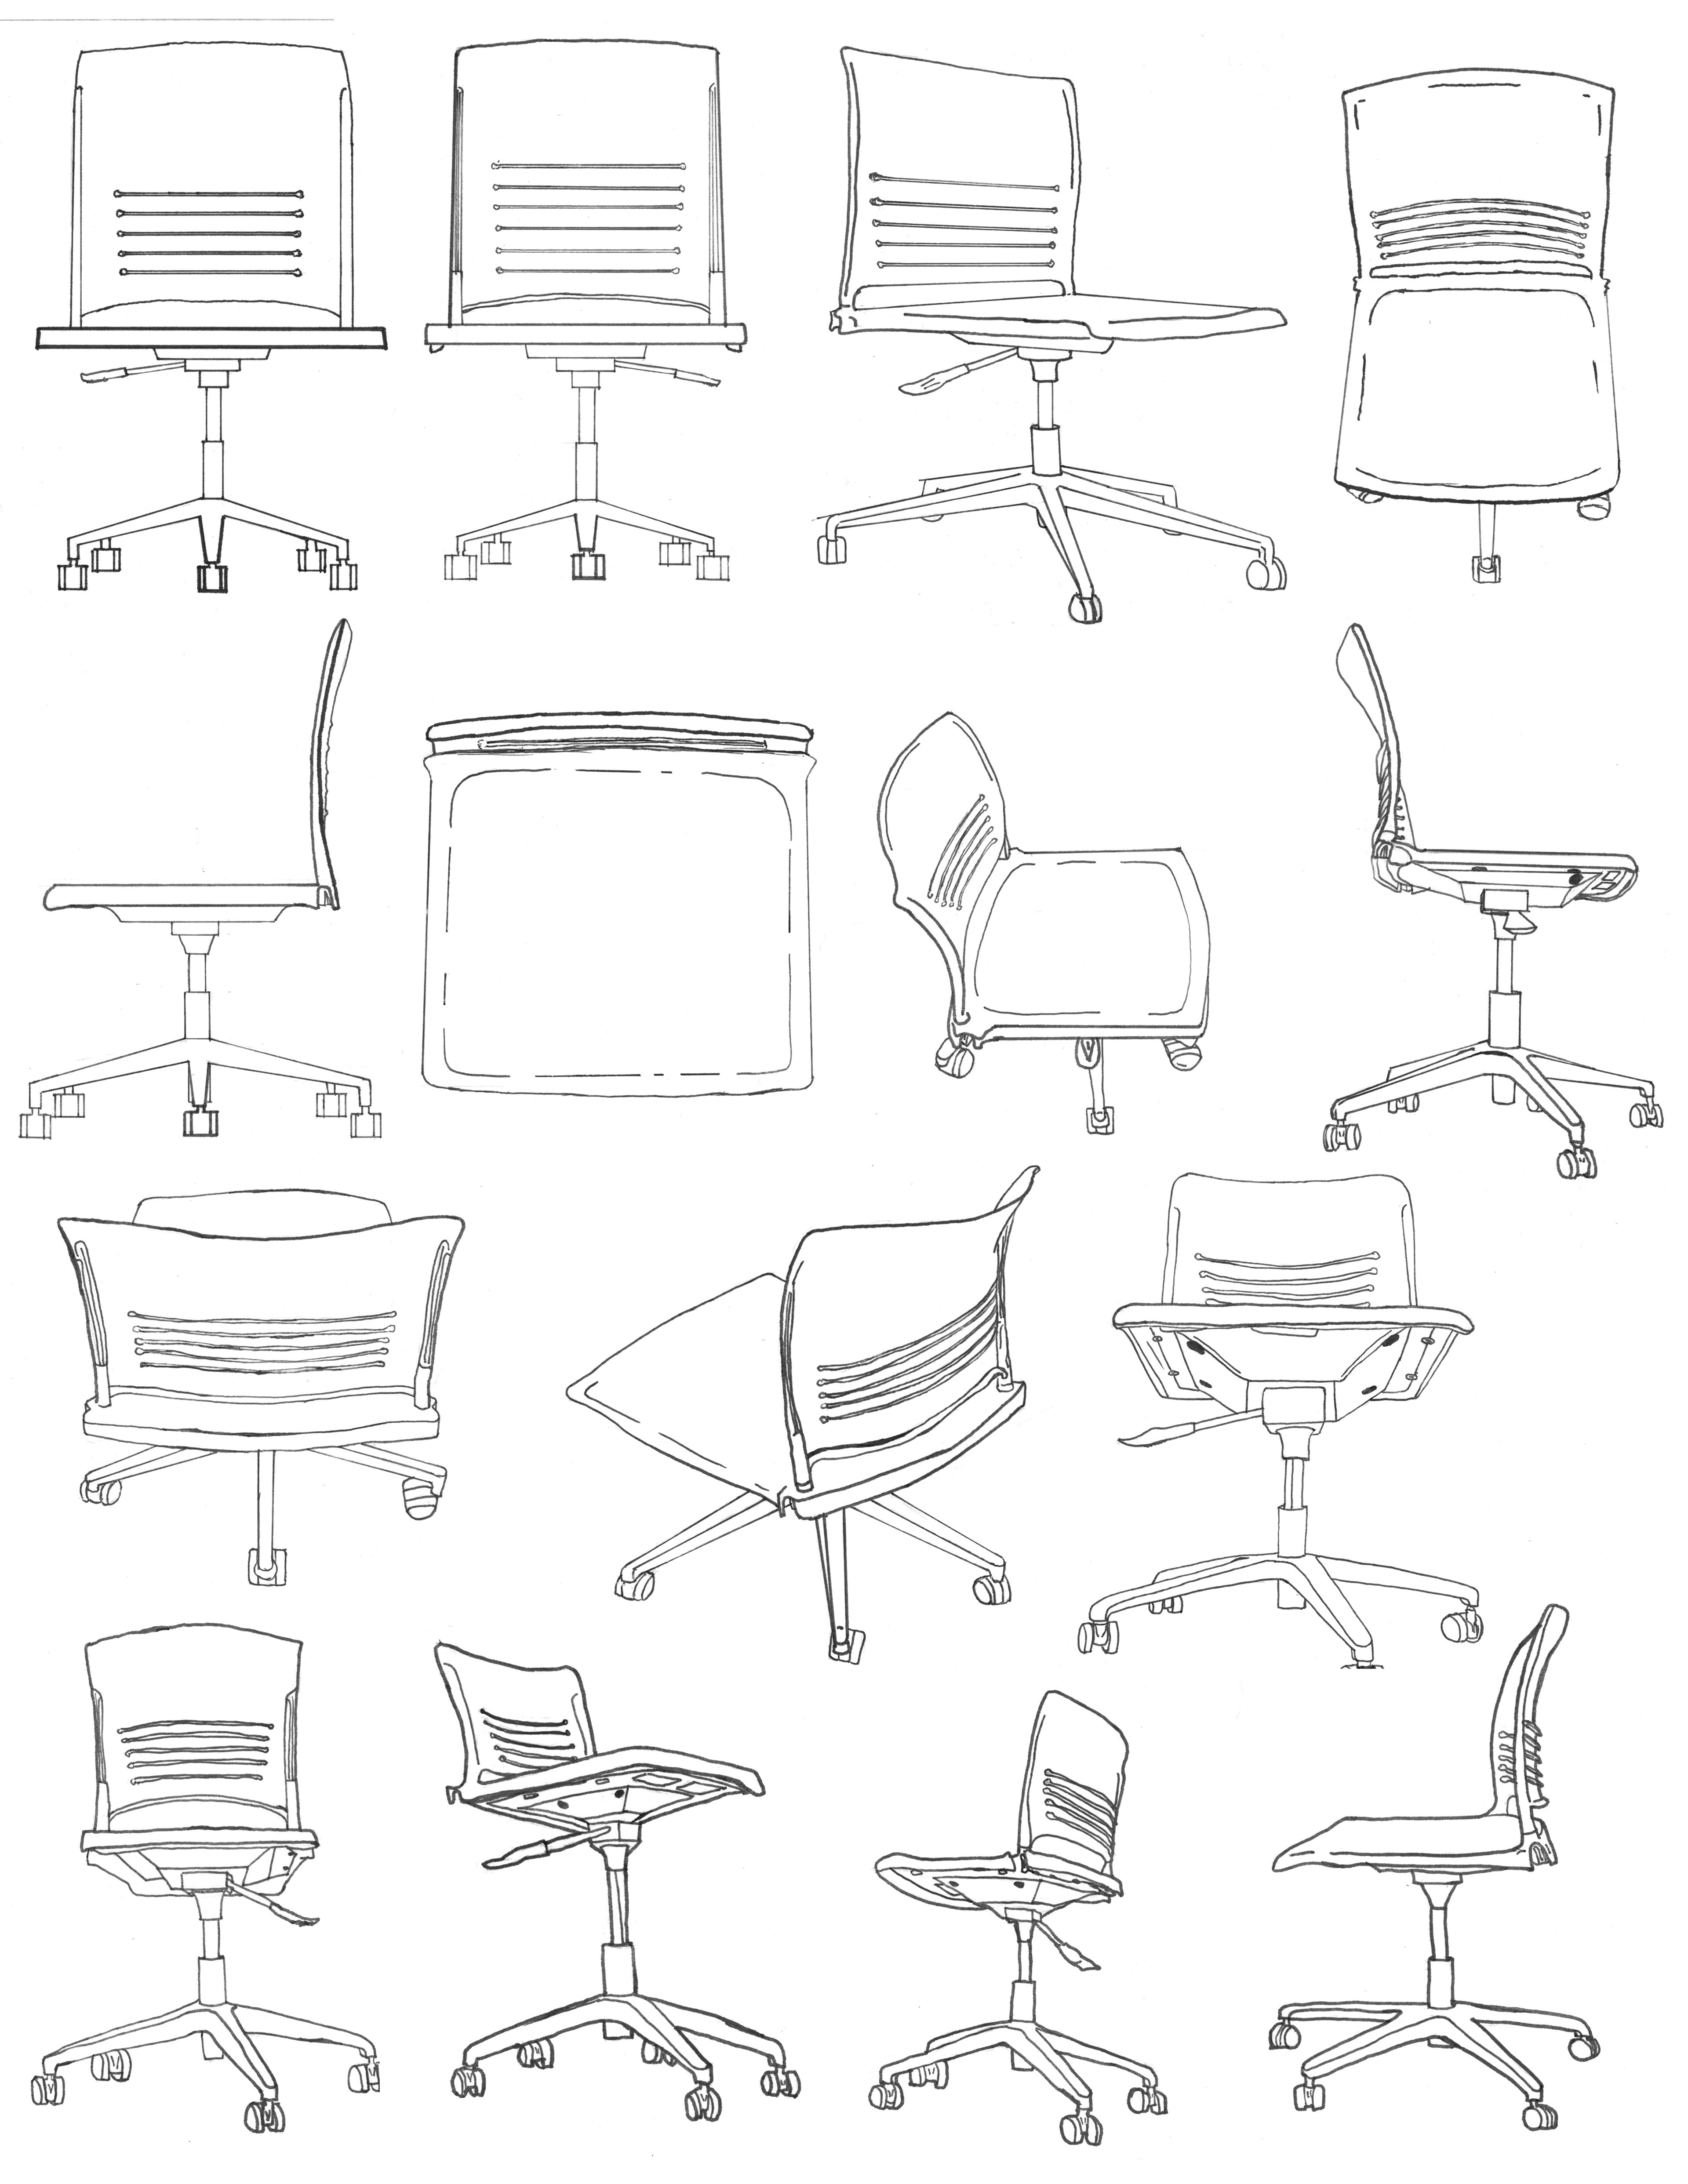 Office furniture design sketches - Office Chair Sketches